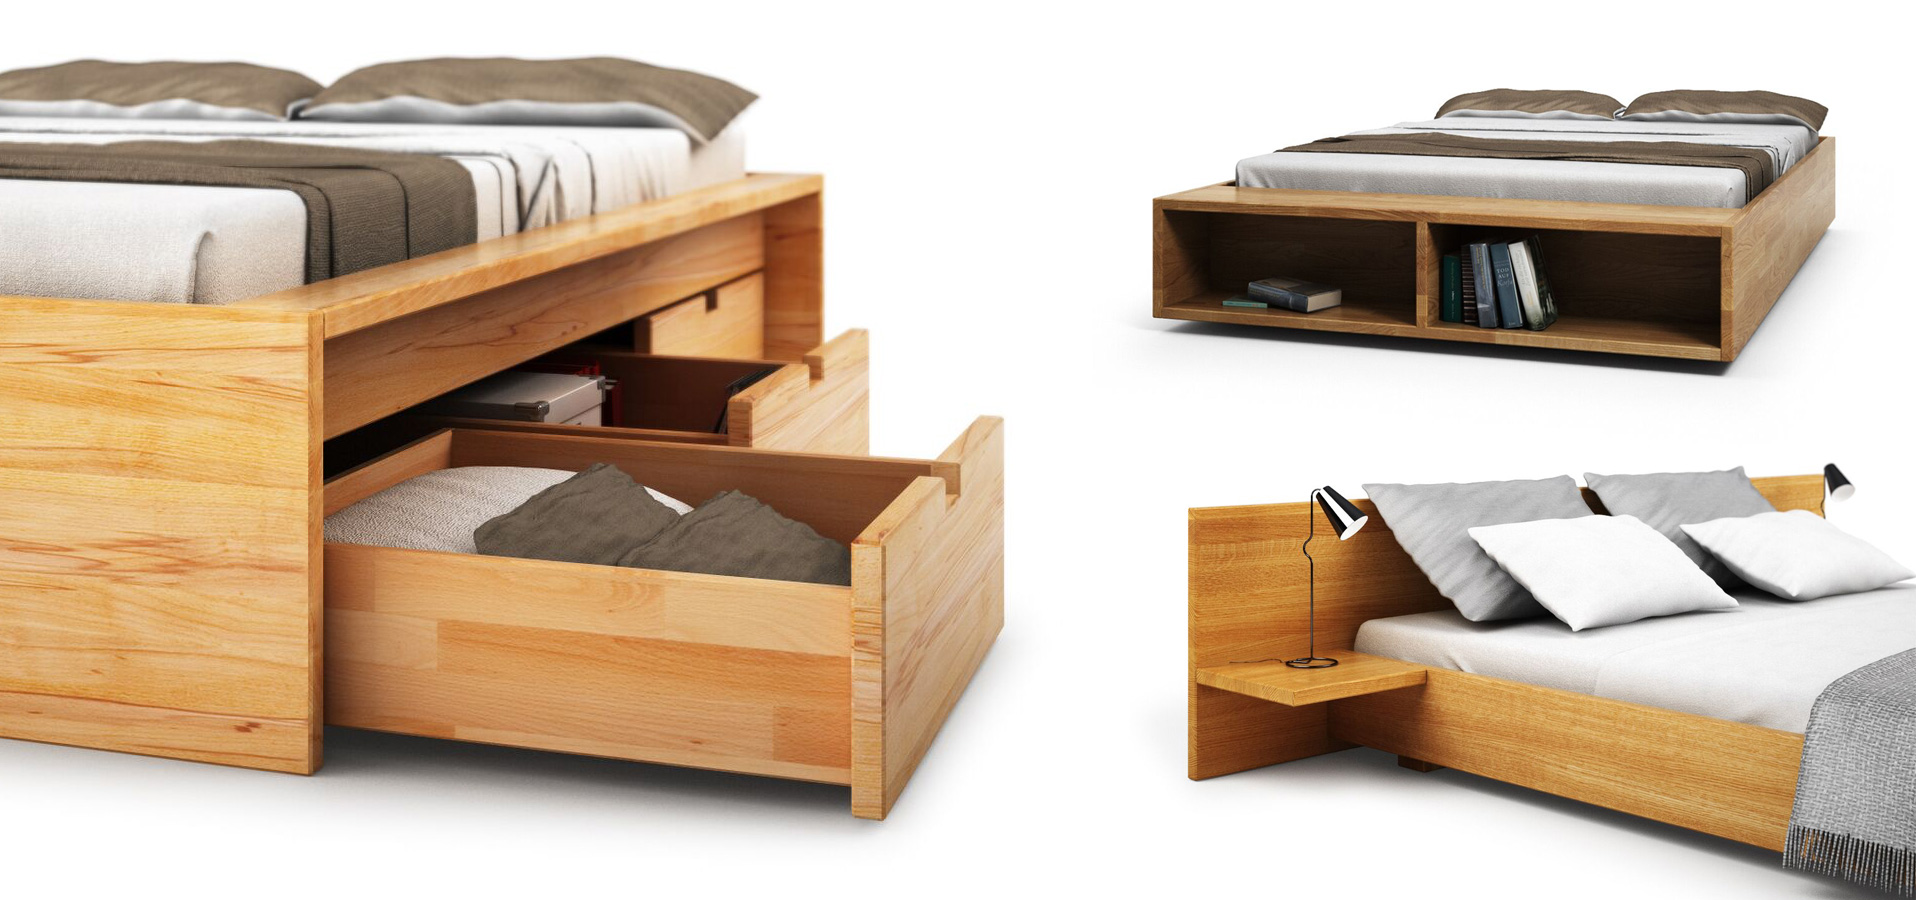 ein bett mit mehrwert der holzconnection blog. Black Bedroom Furniture Sets. Home Design Ideas